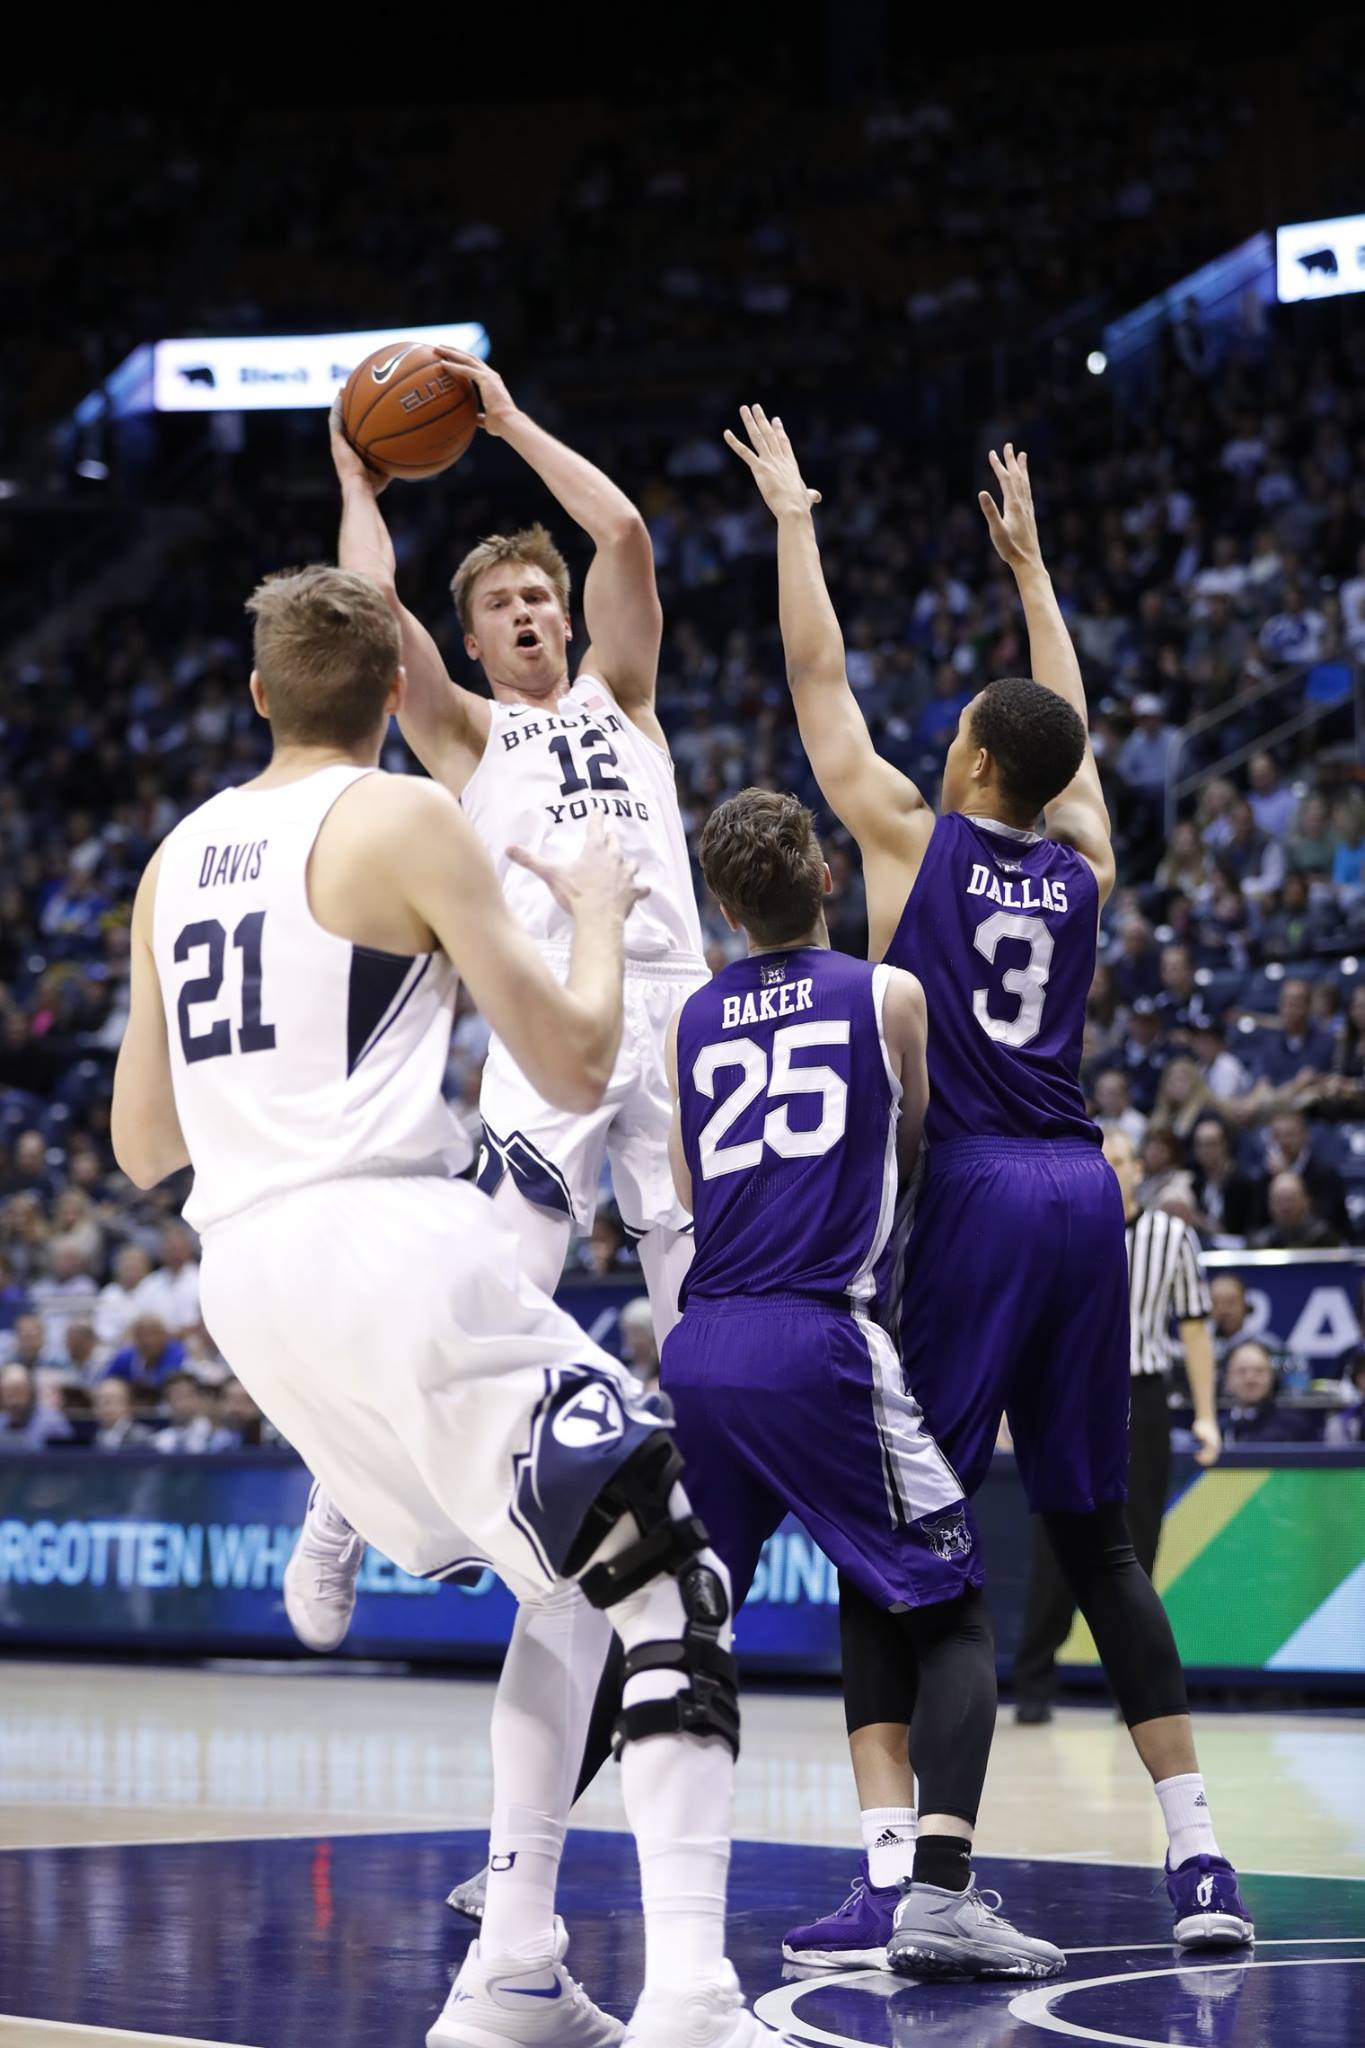 Eric Mika (12) looks to pass to Kyle Davis, BYU vs. Weber State, Provo, Utah, Dec. 7, 2016 | Photo by BYU Photo